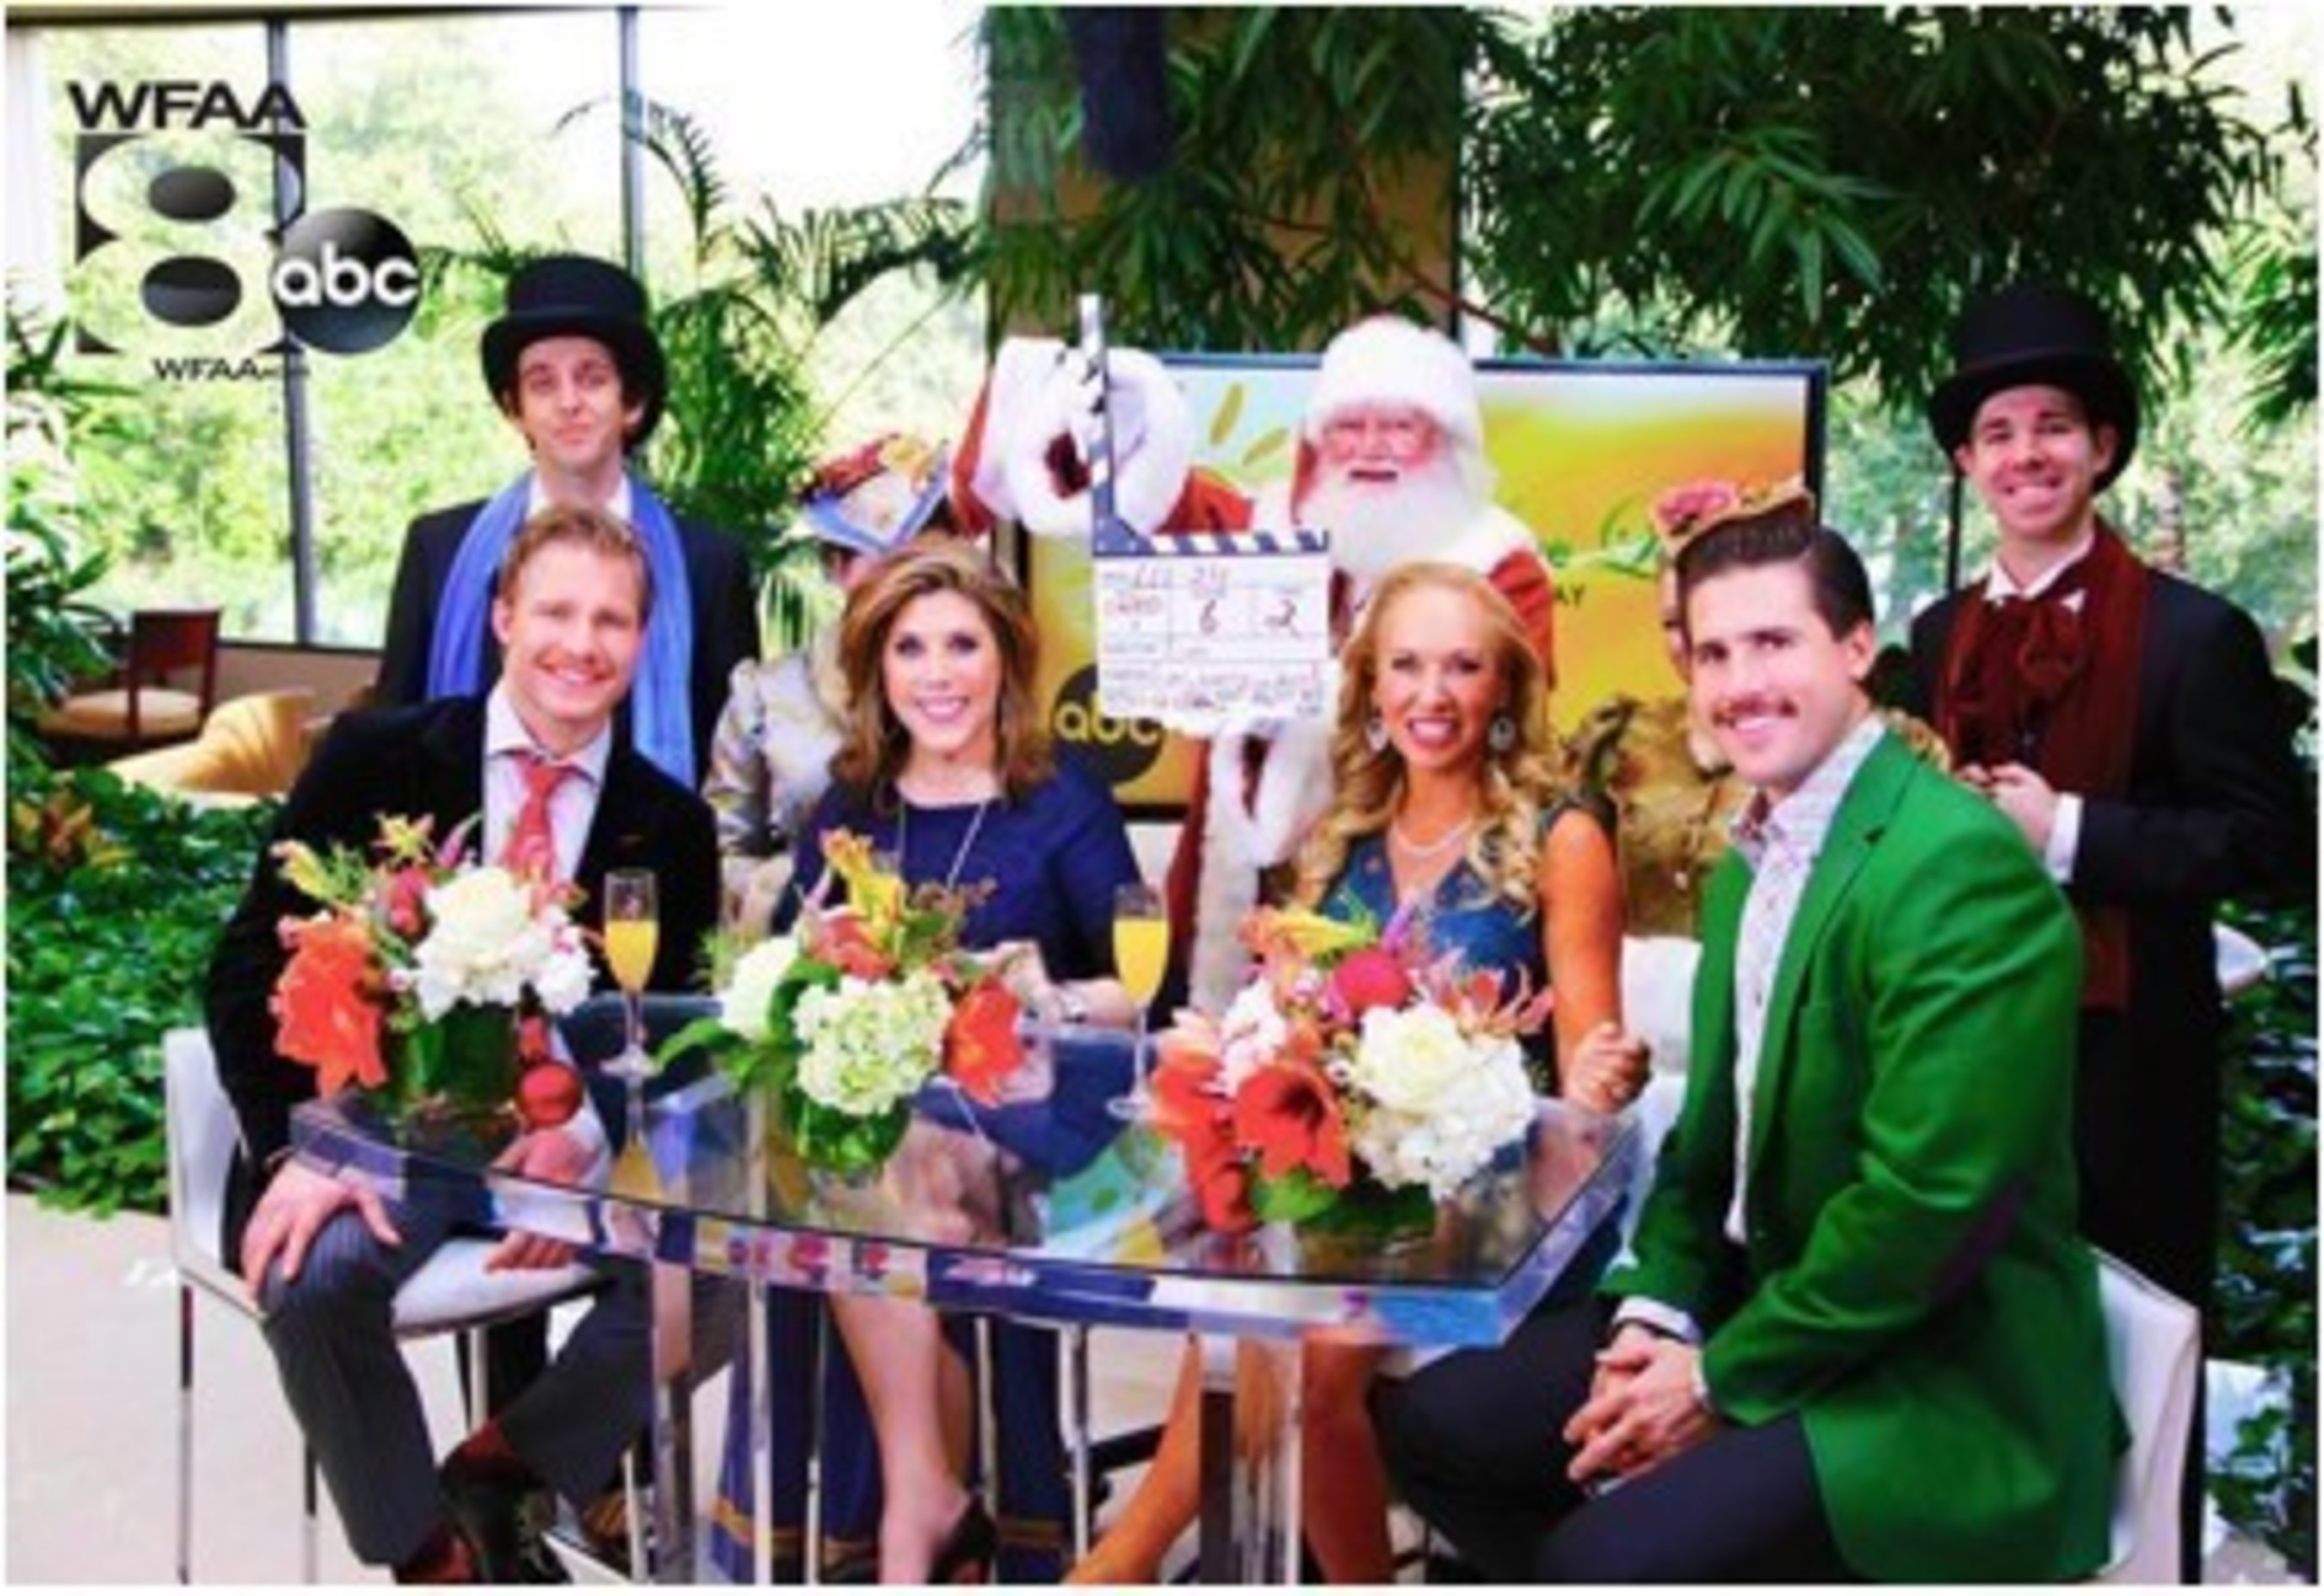 It's a 'Wild West Christmas' on the 'Live Love Laugh Today Show' With Guest CoHosts From the